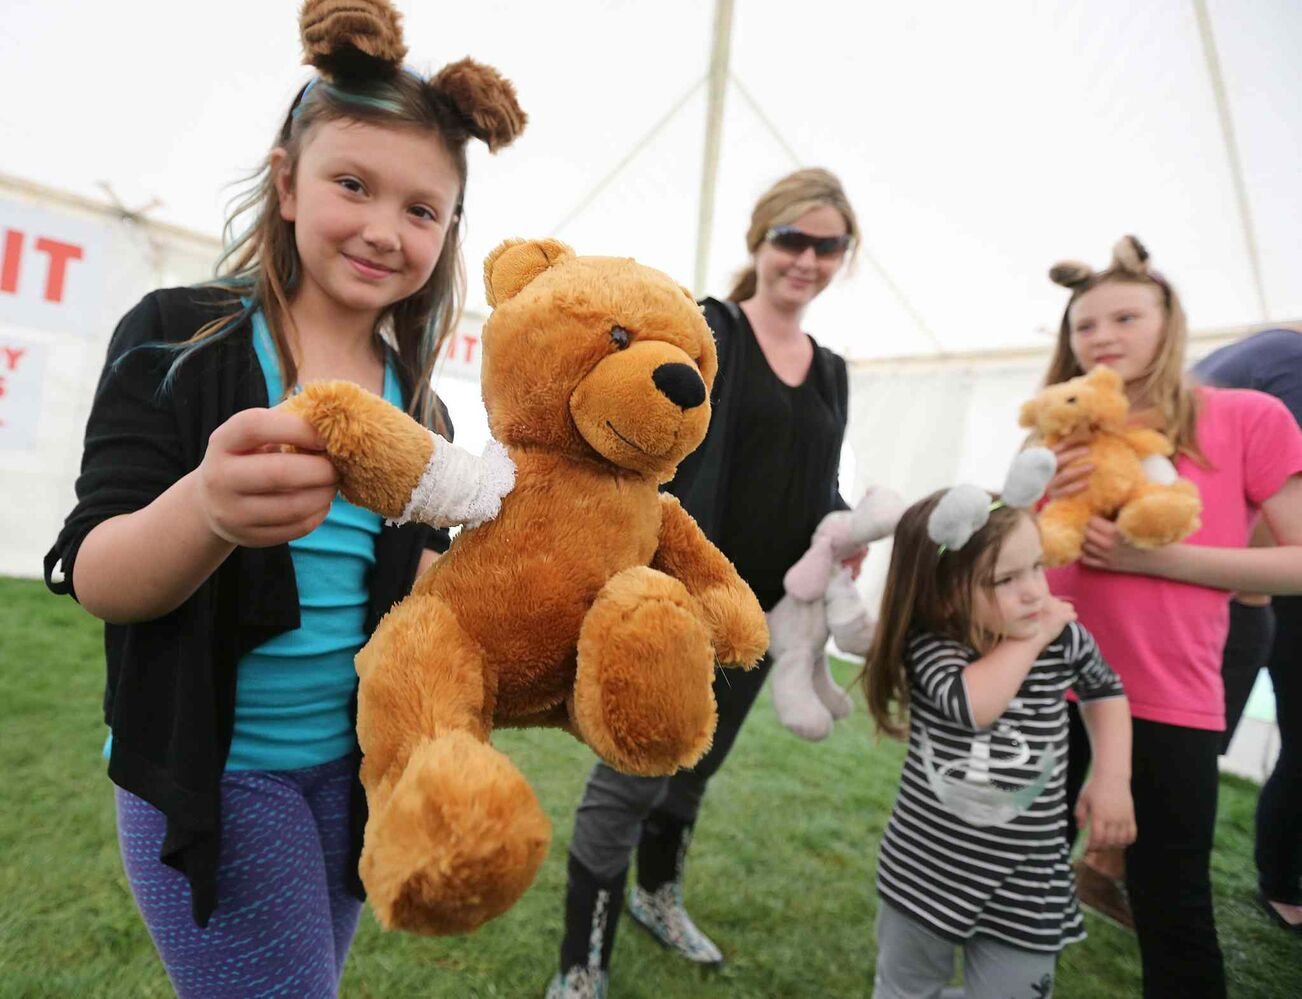 Nine-year-old Cadence Belbas shows of her bear Caramel's cast at the 28th annual Teddy Bears Picnic at Assiniboine Park Sunday. The event is a fundraiser for the Children's Hospital Foundation of Manitoba.  (Jason Halstead / Winnipeg Free Press)